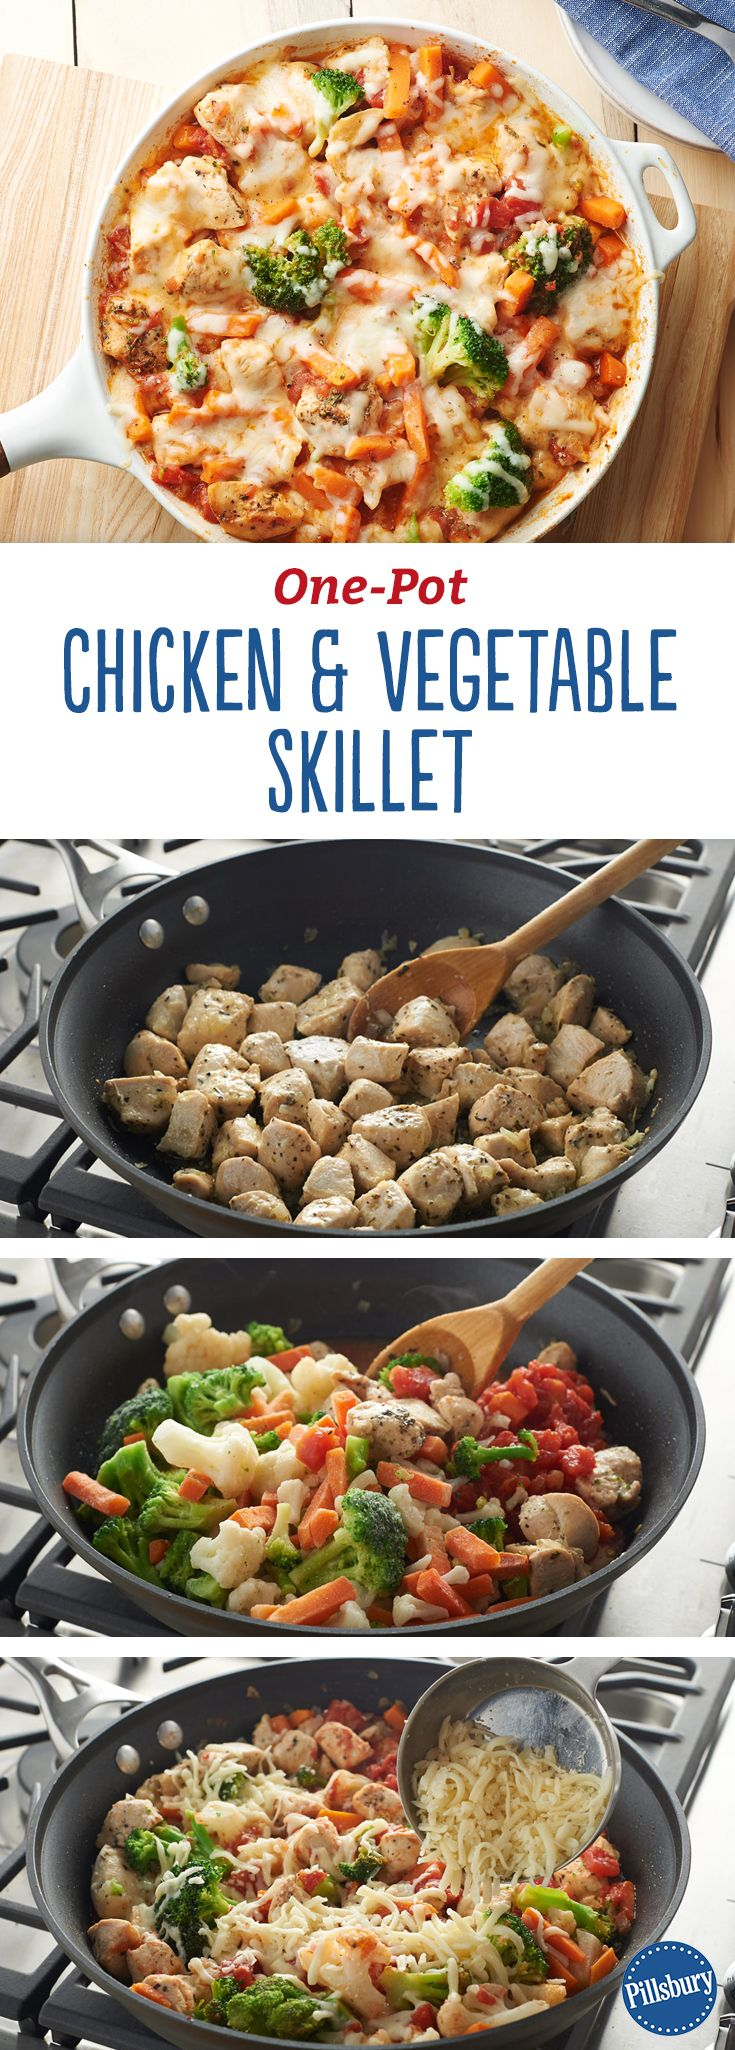 Top 25+ Best Chicken And Vegetables Ideas On Pinterest  Chicken Potatoes,  One Pan Chicken And Easy Vegetable Recipes